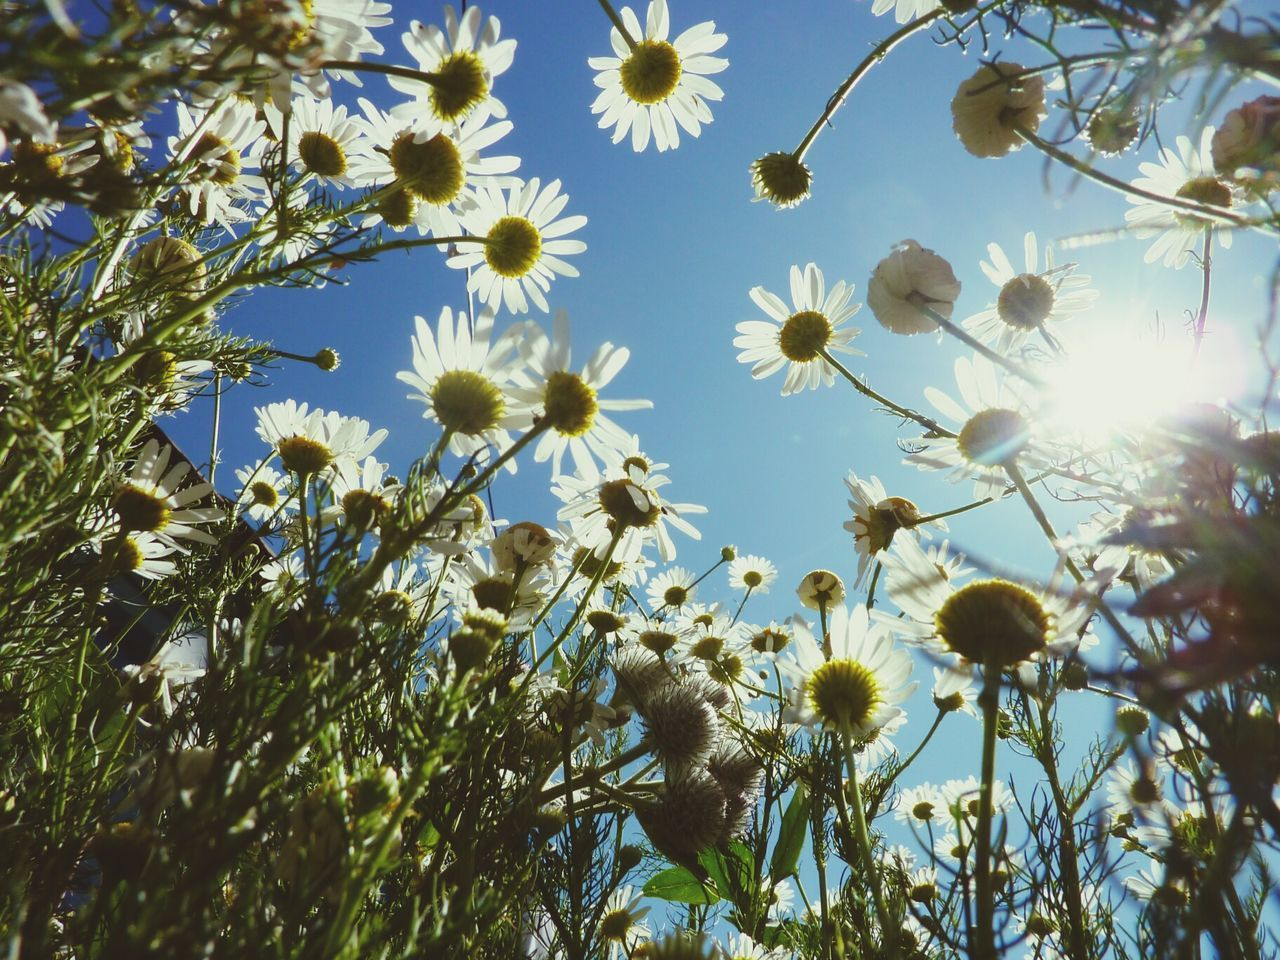 Low Angle View Of Daisy Flowers Blooming In Field Against Sky